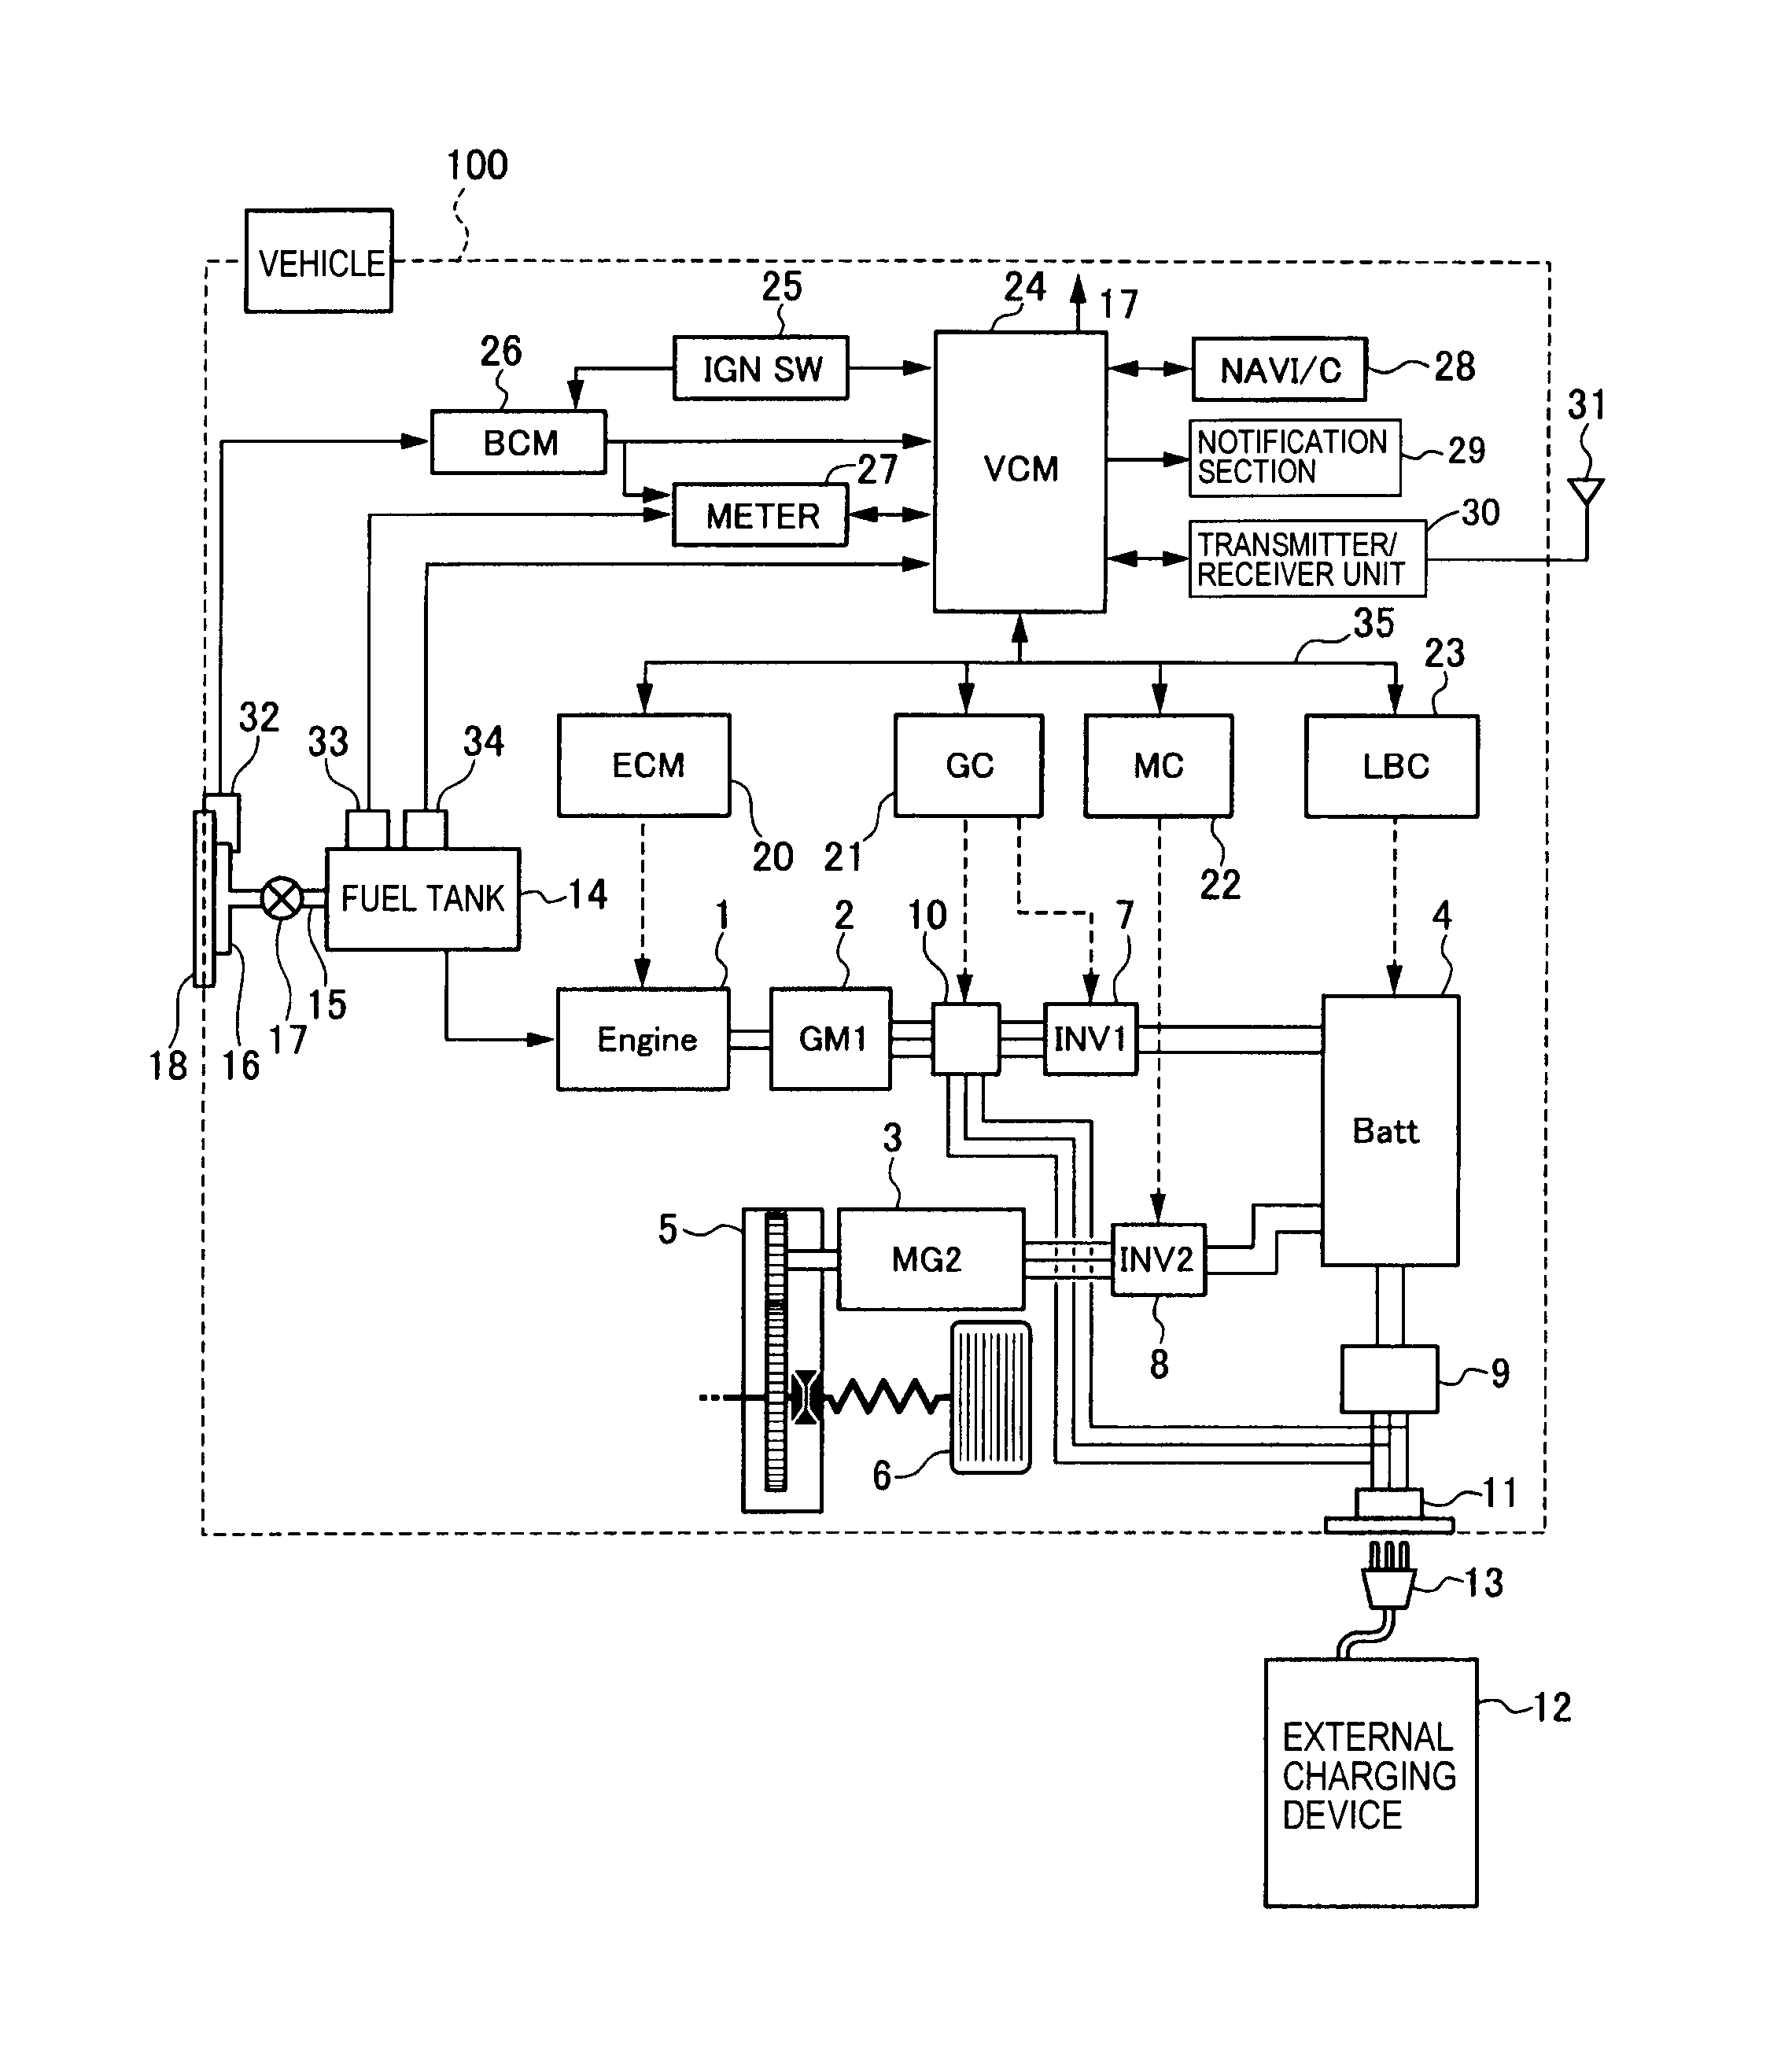 Defrost Timers Refrigeration As Well On Commercial Freezers Wiring